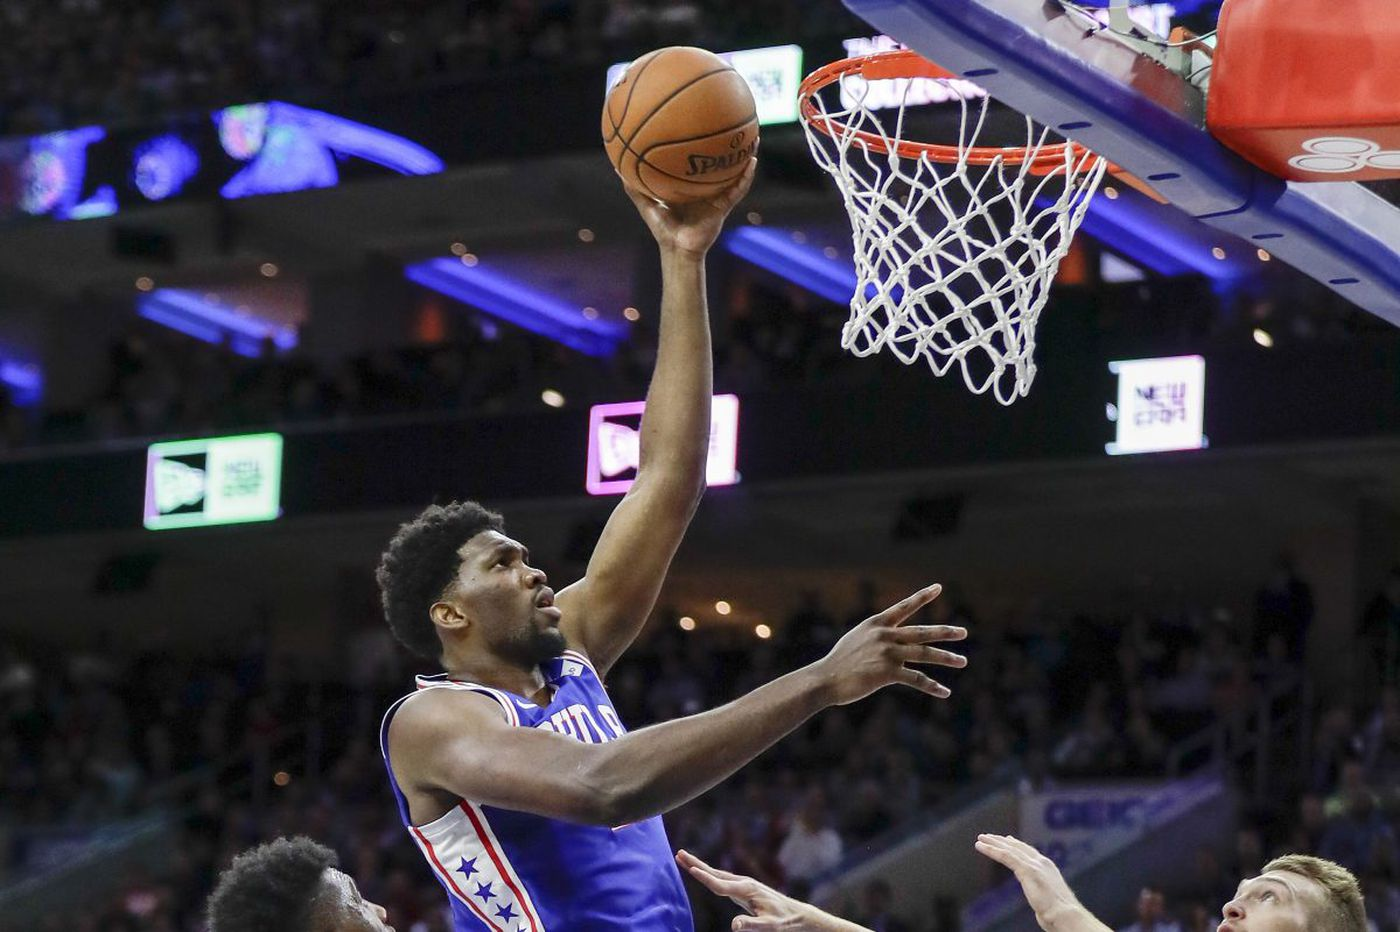 Sports Tonight: Sixers are reloaded to manage game with Kings